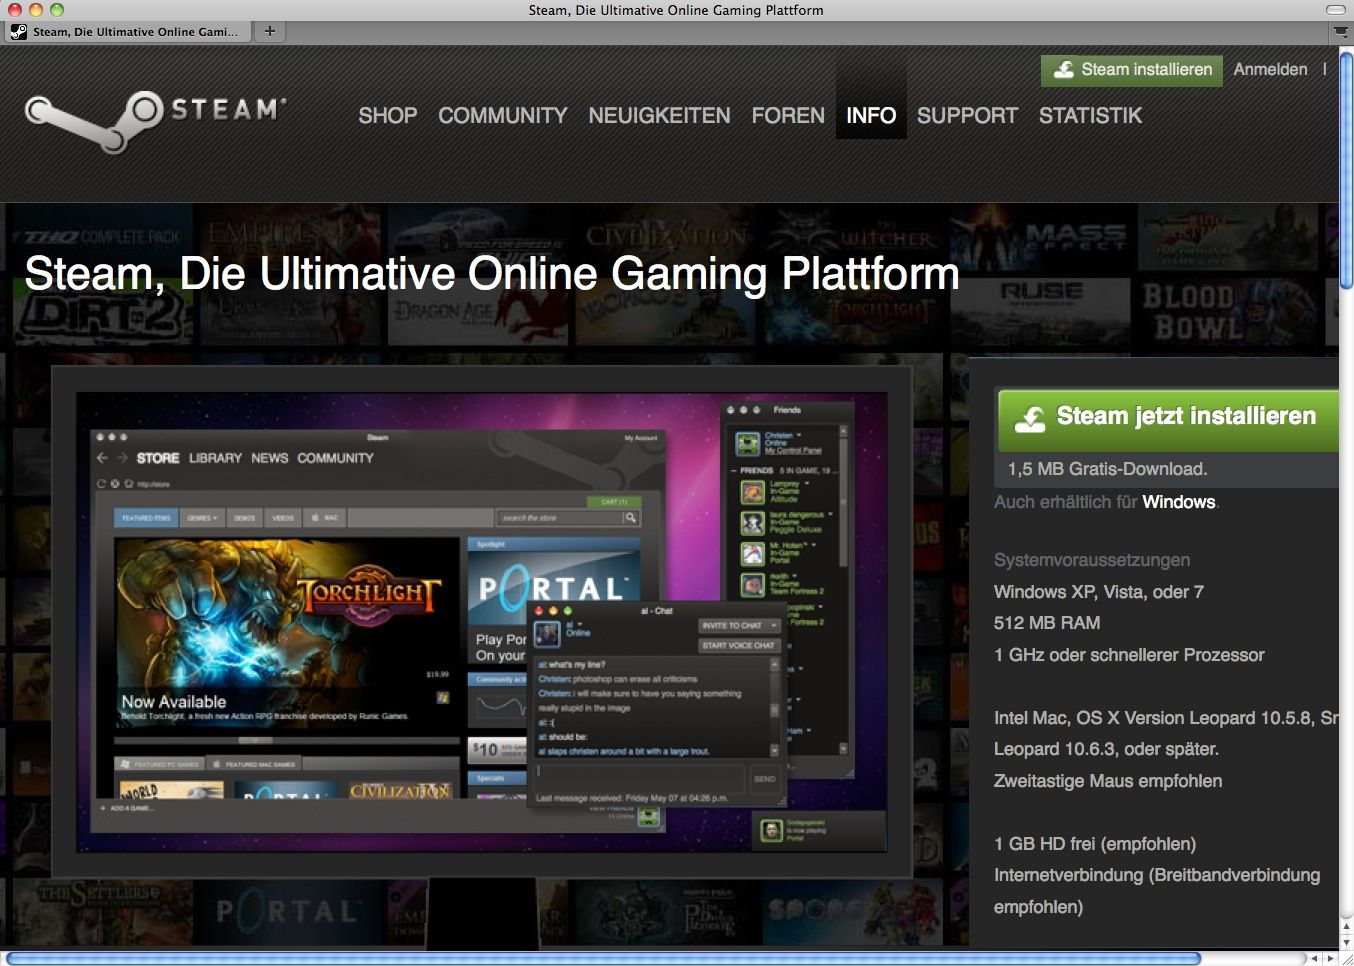 SCREENSHOT Steam / Game Plattform / NETZWELT